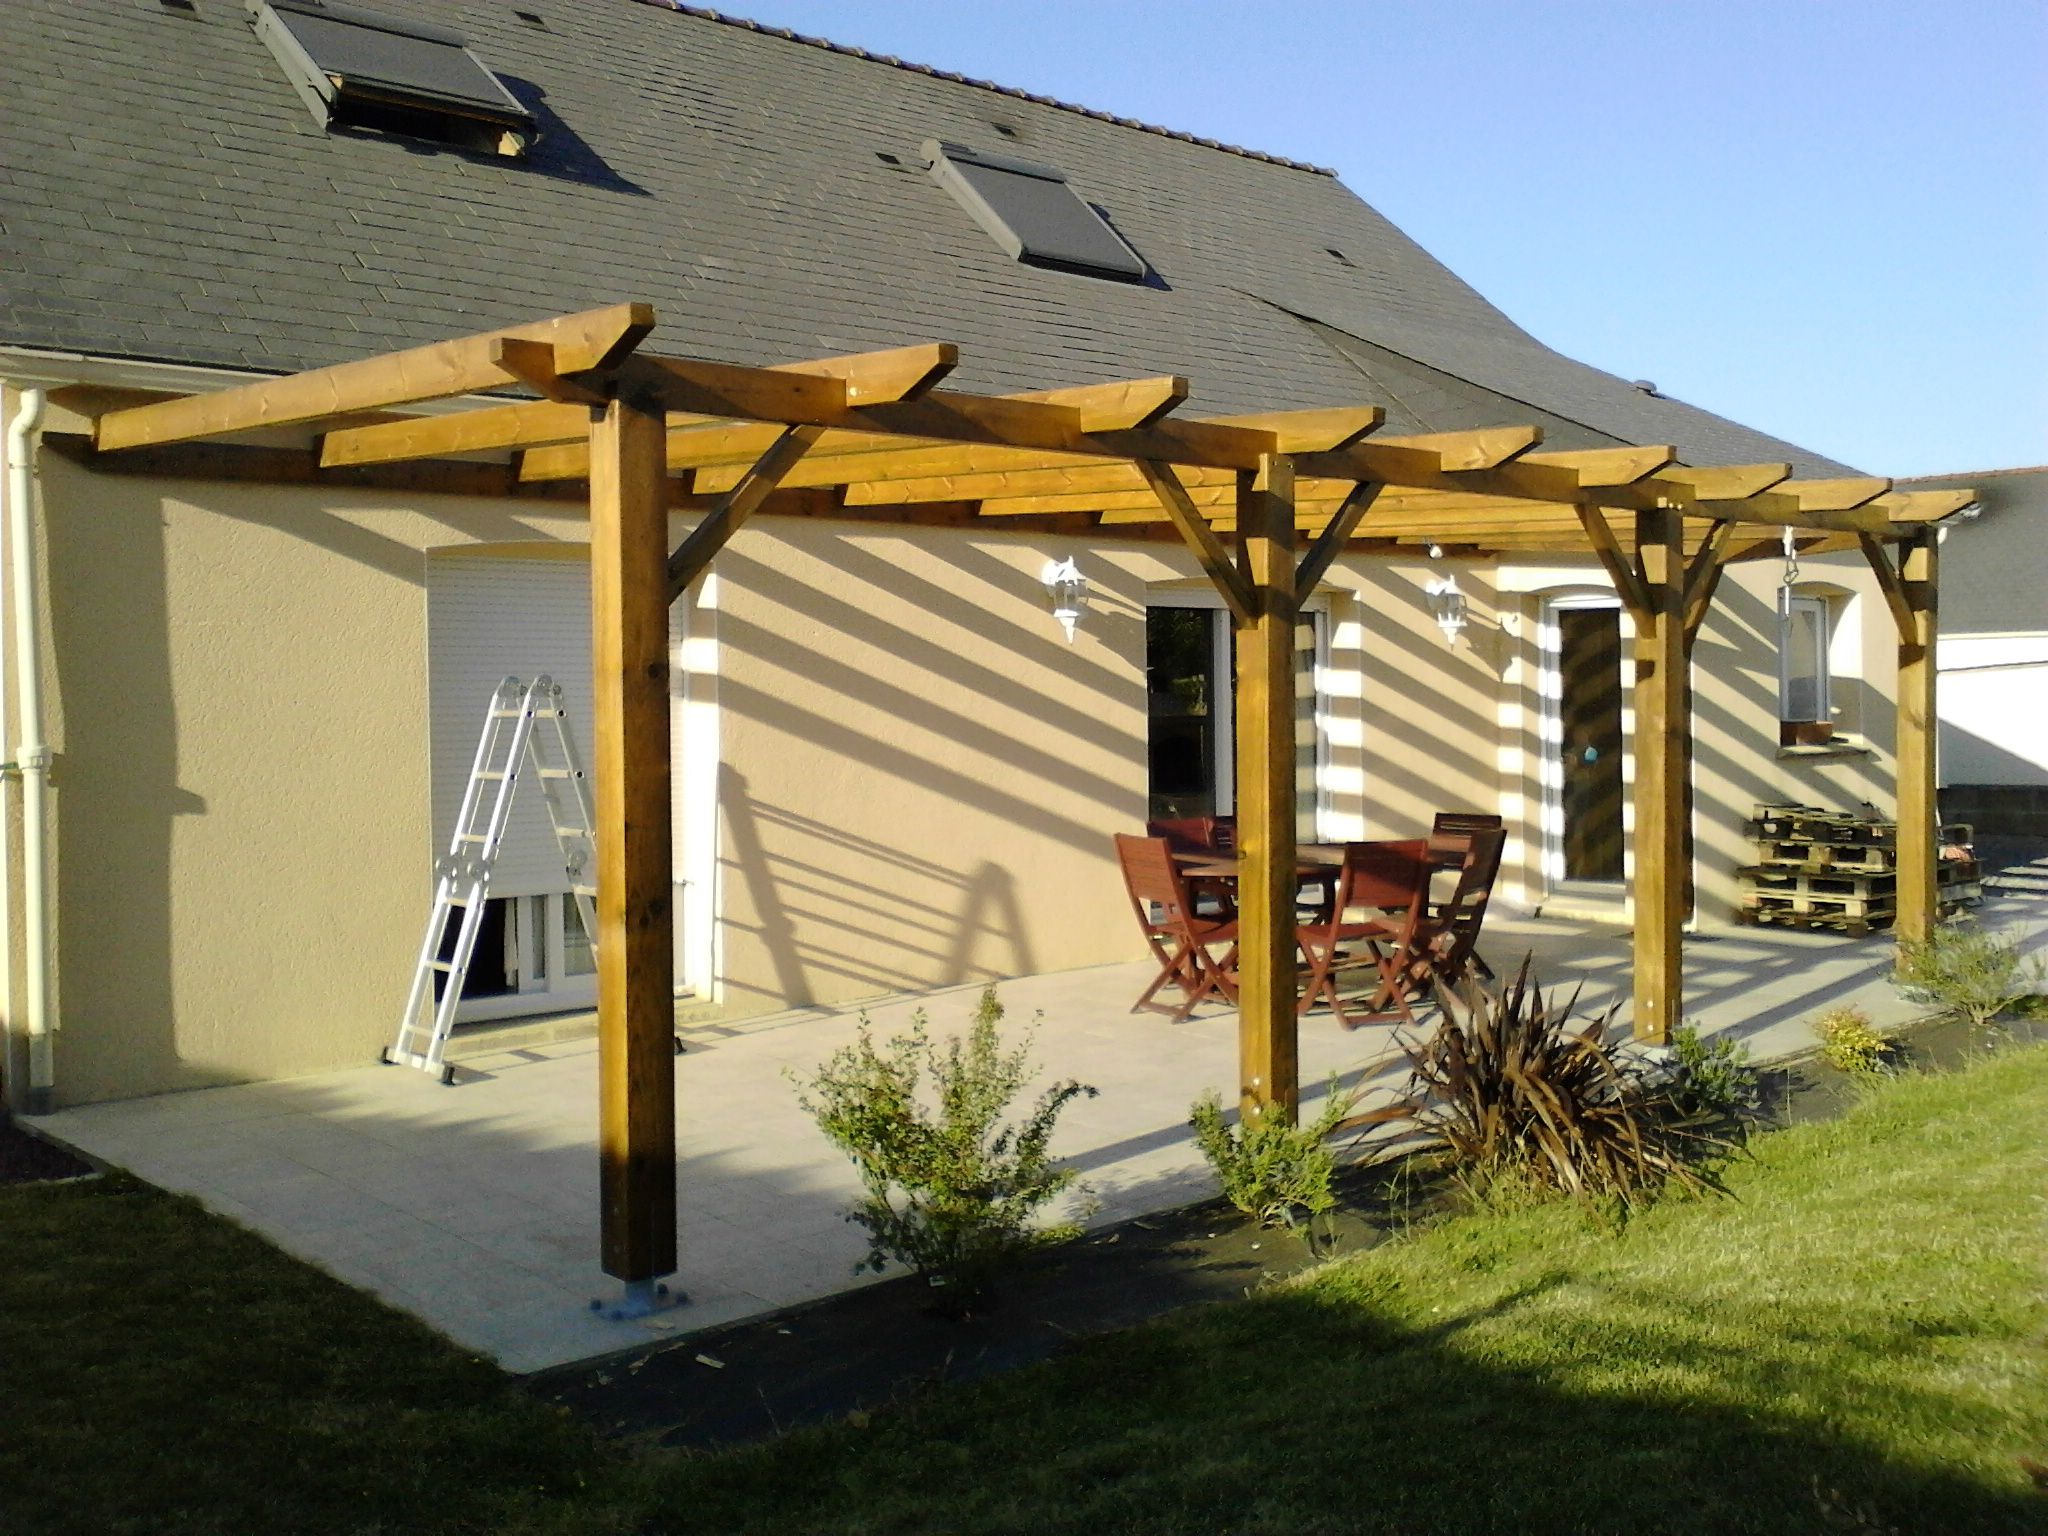 construction d 39 une pergola en bois instructions de bosch au jardin en ext rieur pergola. Black Bedroom Furniture Sets. Home Design Ideas